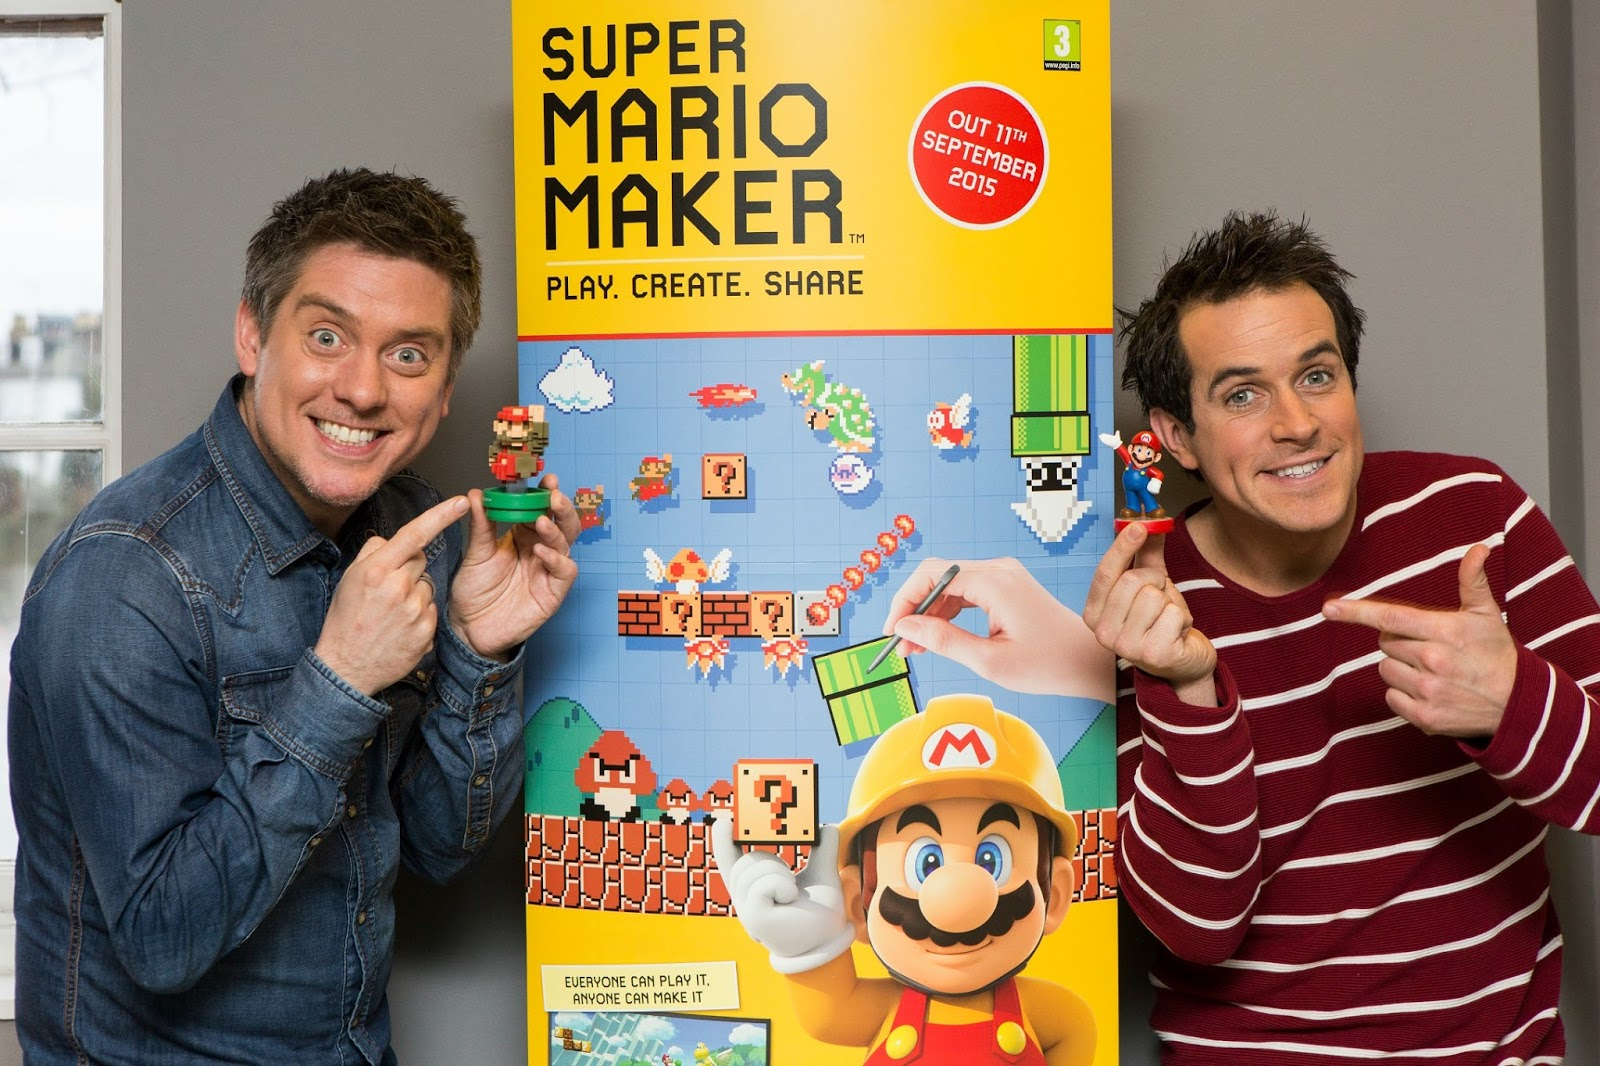 Nintendo Super Mario Maker, Dick and Dom, Dick and Dom create Super Mario Maker Levels